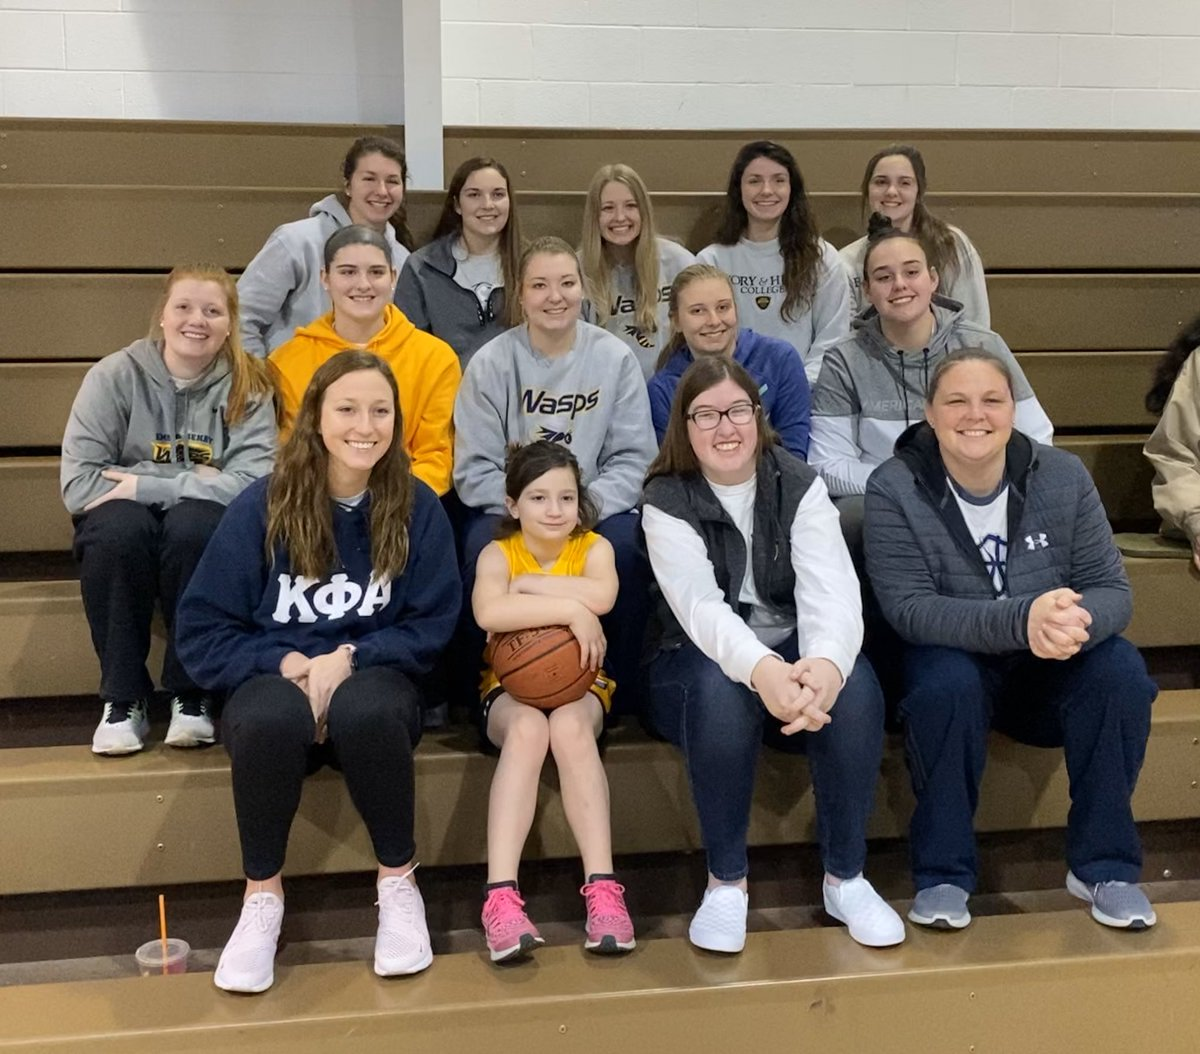 Got to watch our girl Ellee play ball this morning!!! Great defense, good passes and scored a basket!!! 💙💛🏀